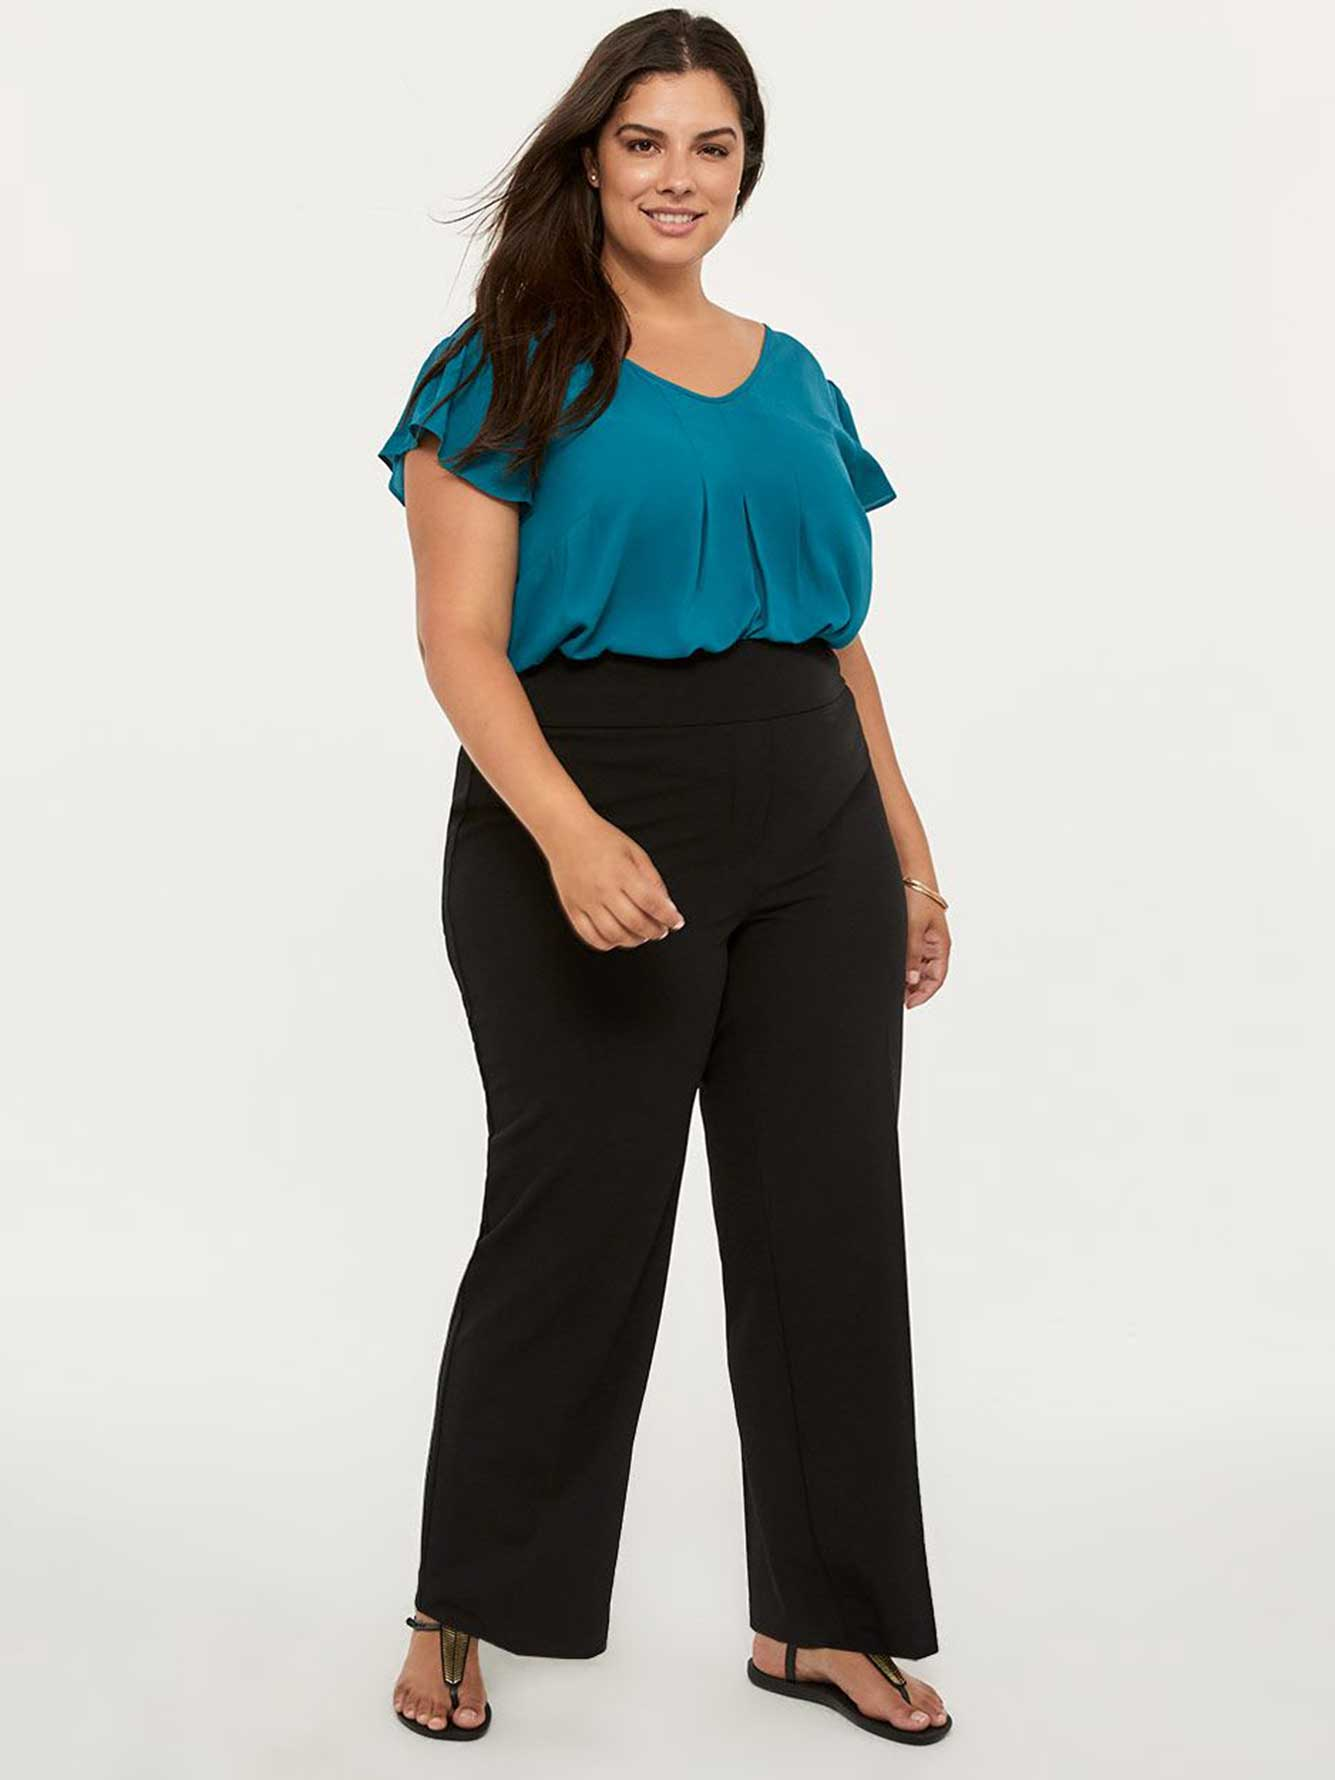 b6e0a278957 Petite Savvy Universal Fit Wide Leg Pull-On Pant - In Every Story ...